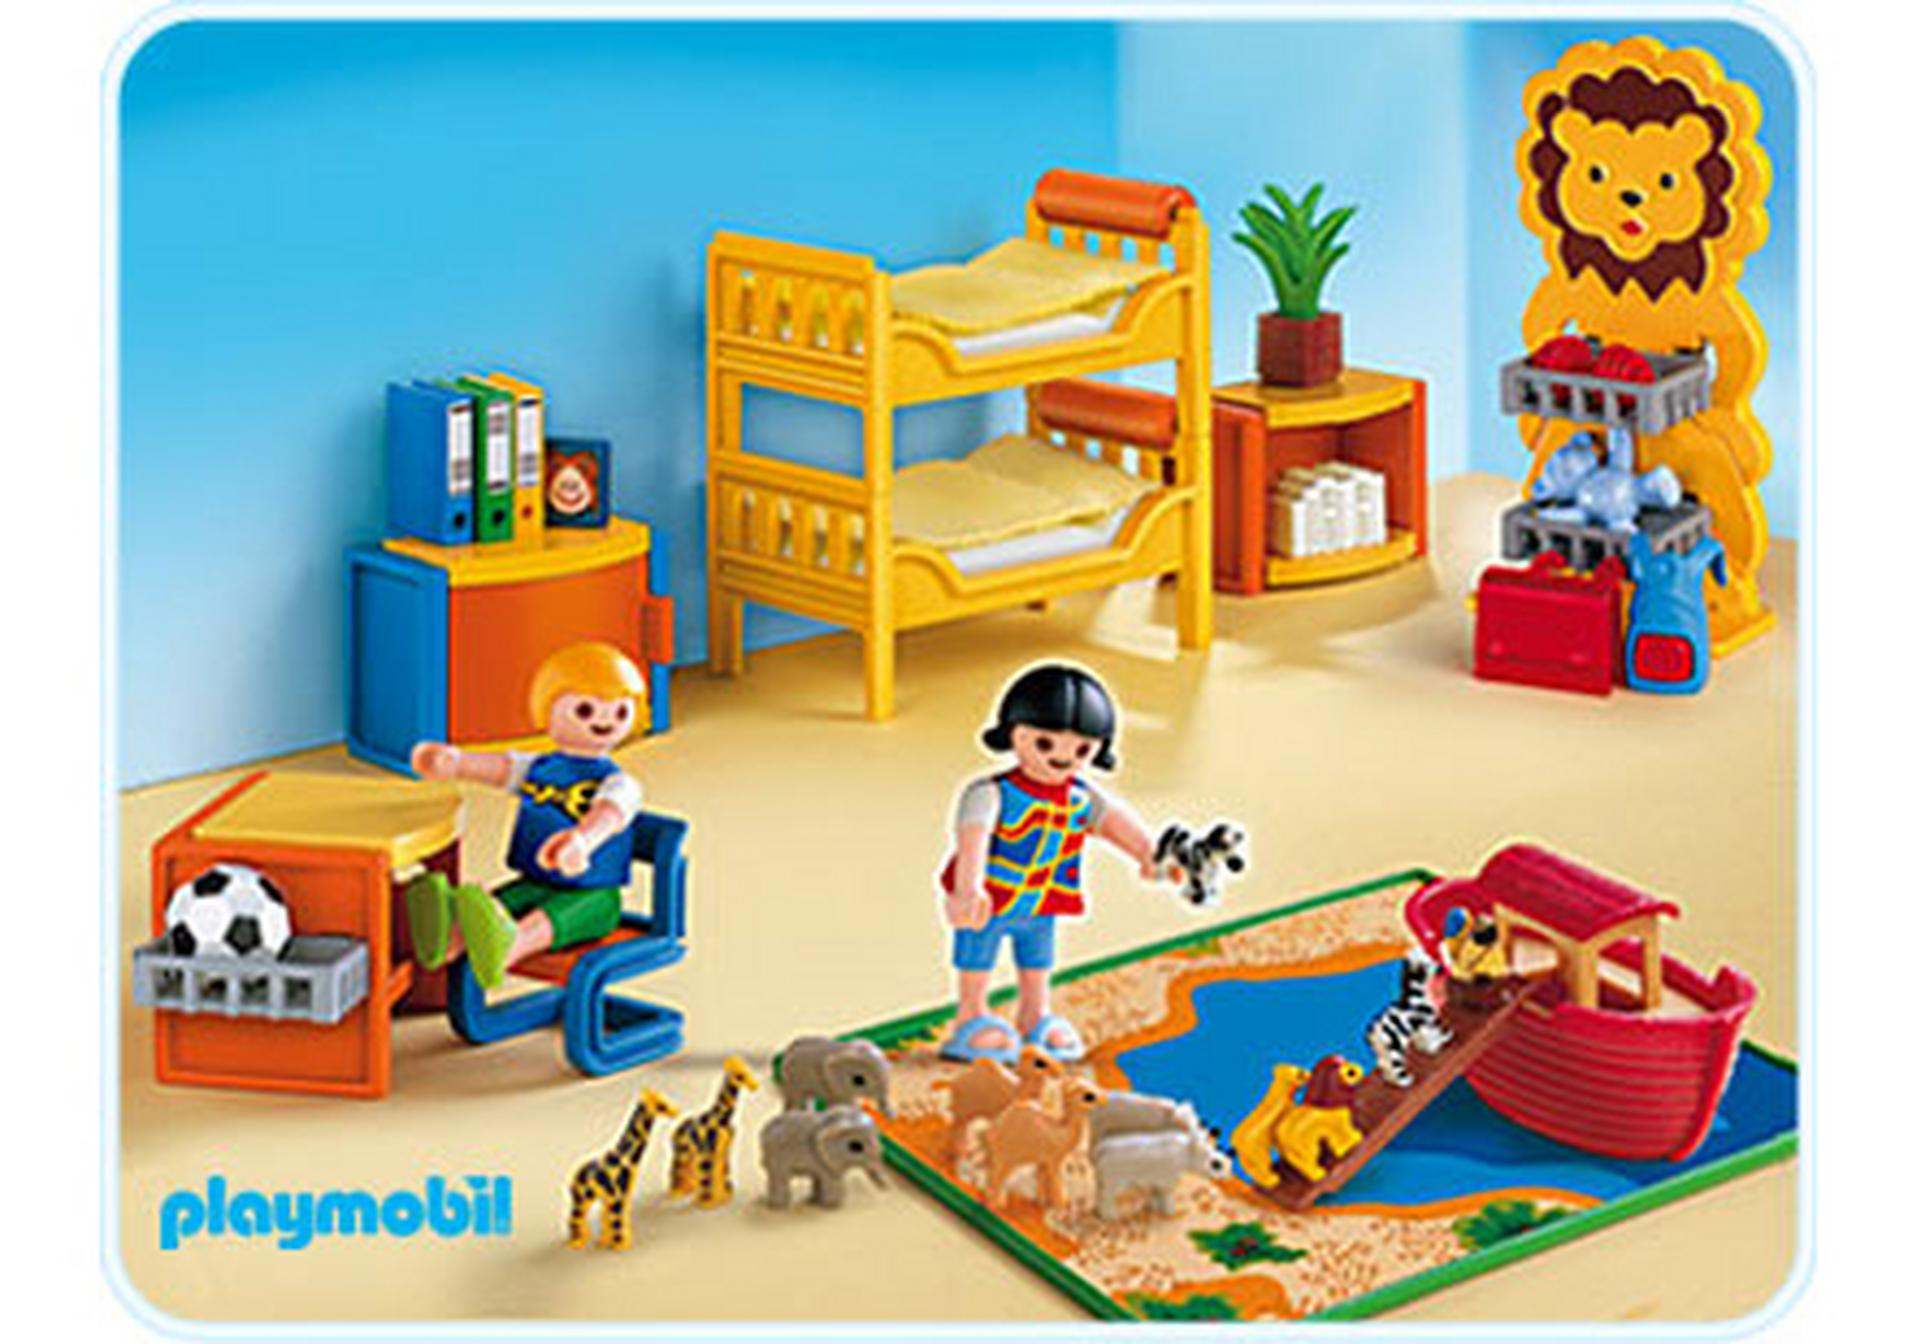 Chambre des enfants 4287 a playmobil france for Playmobil kinderzimmer 4287